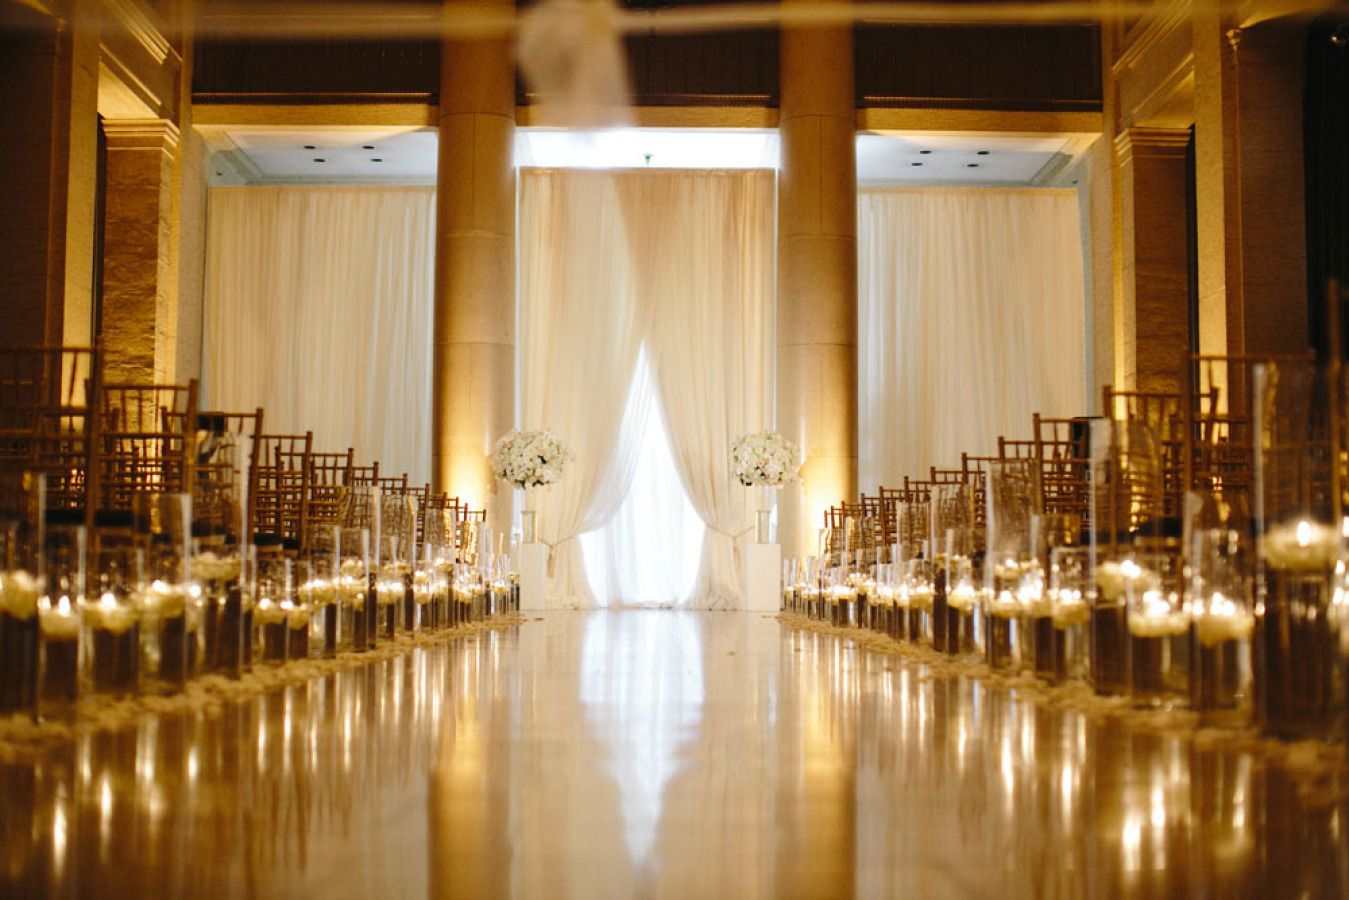 Gold Elegant wedding ceremony with lots of candles | fabmood.com